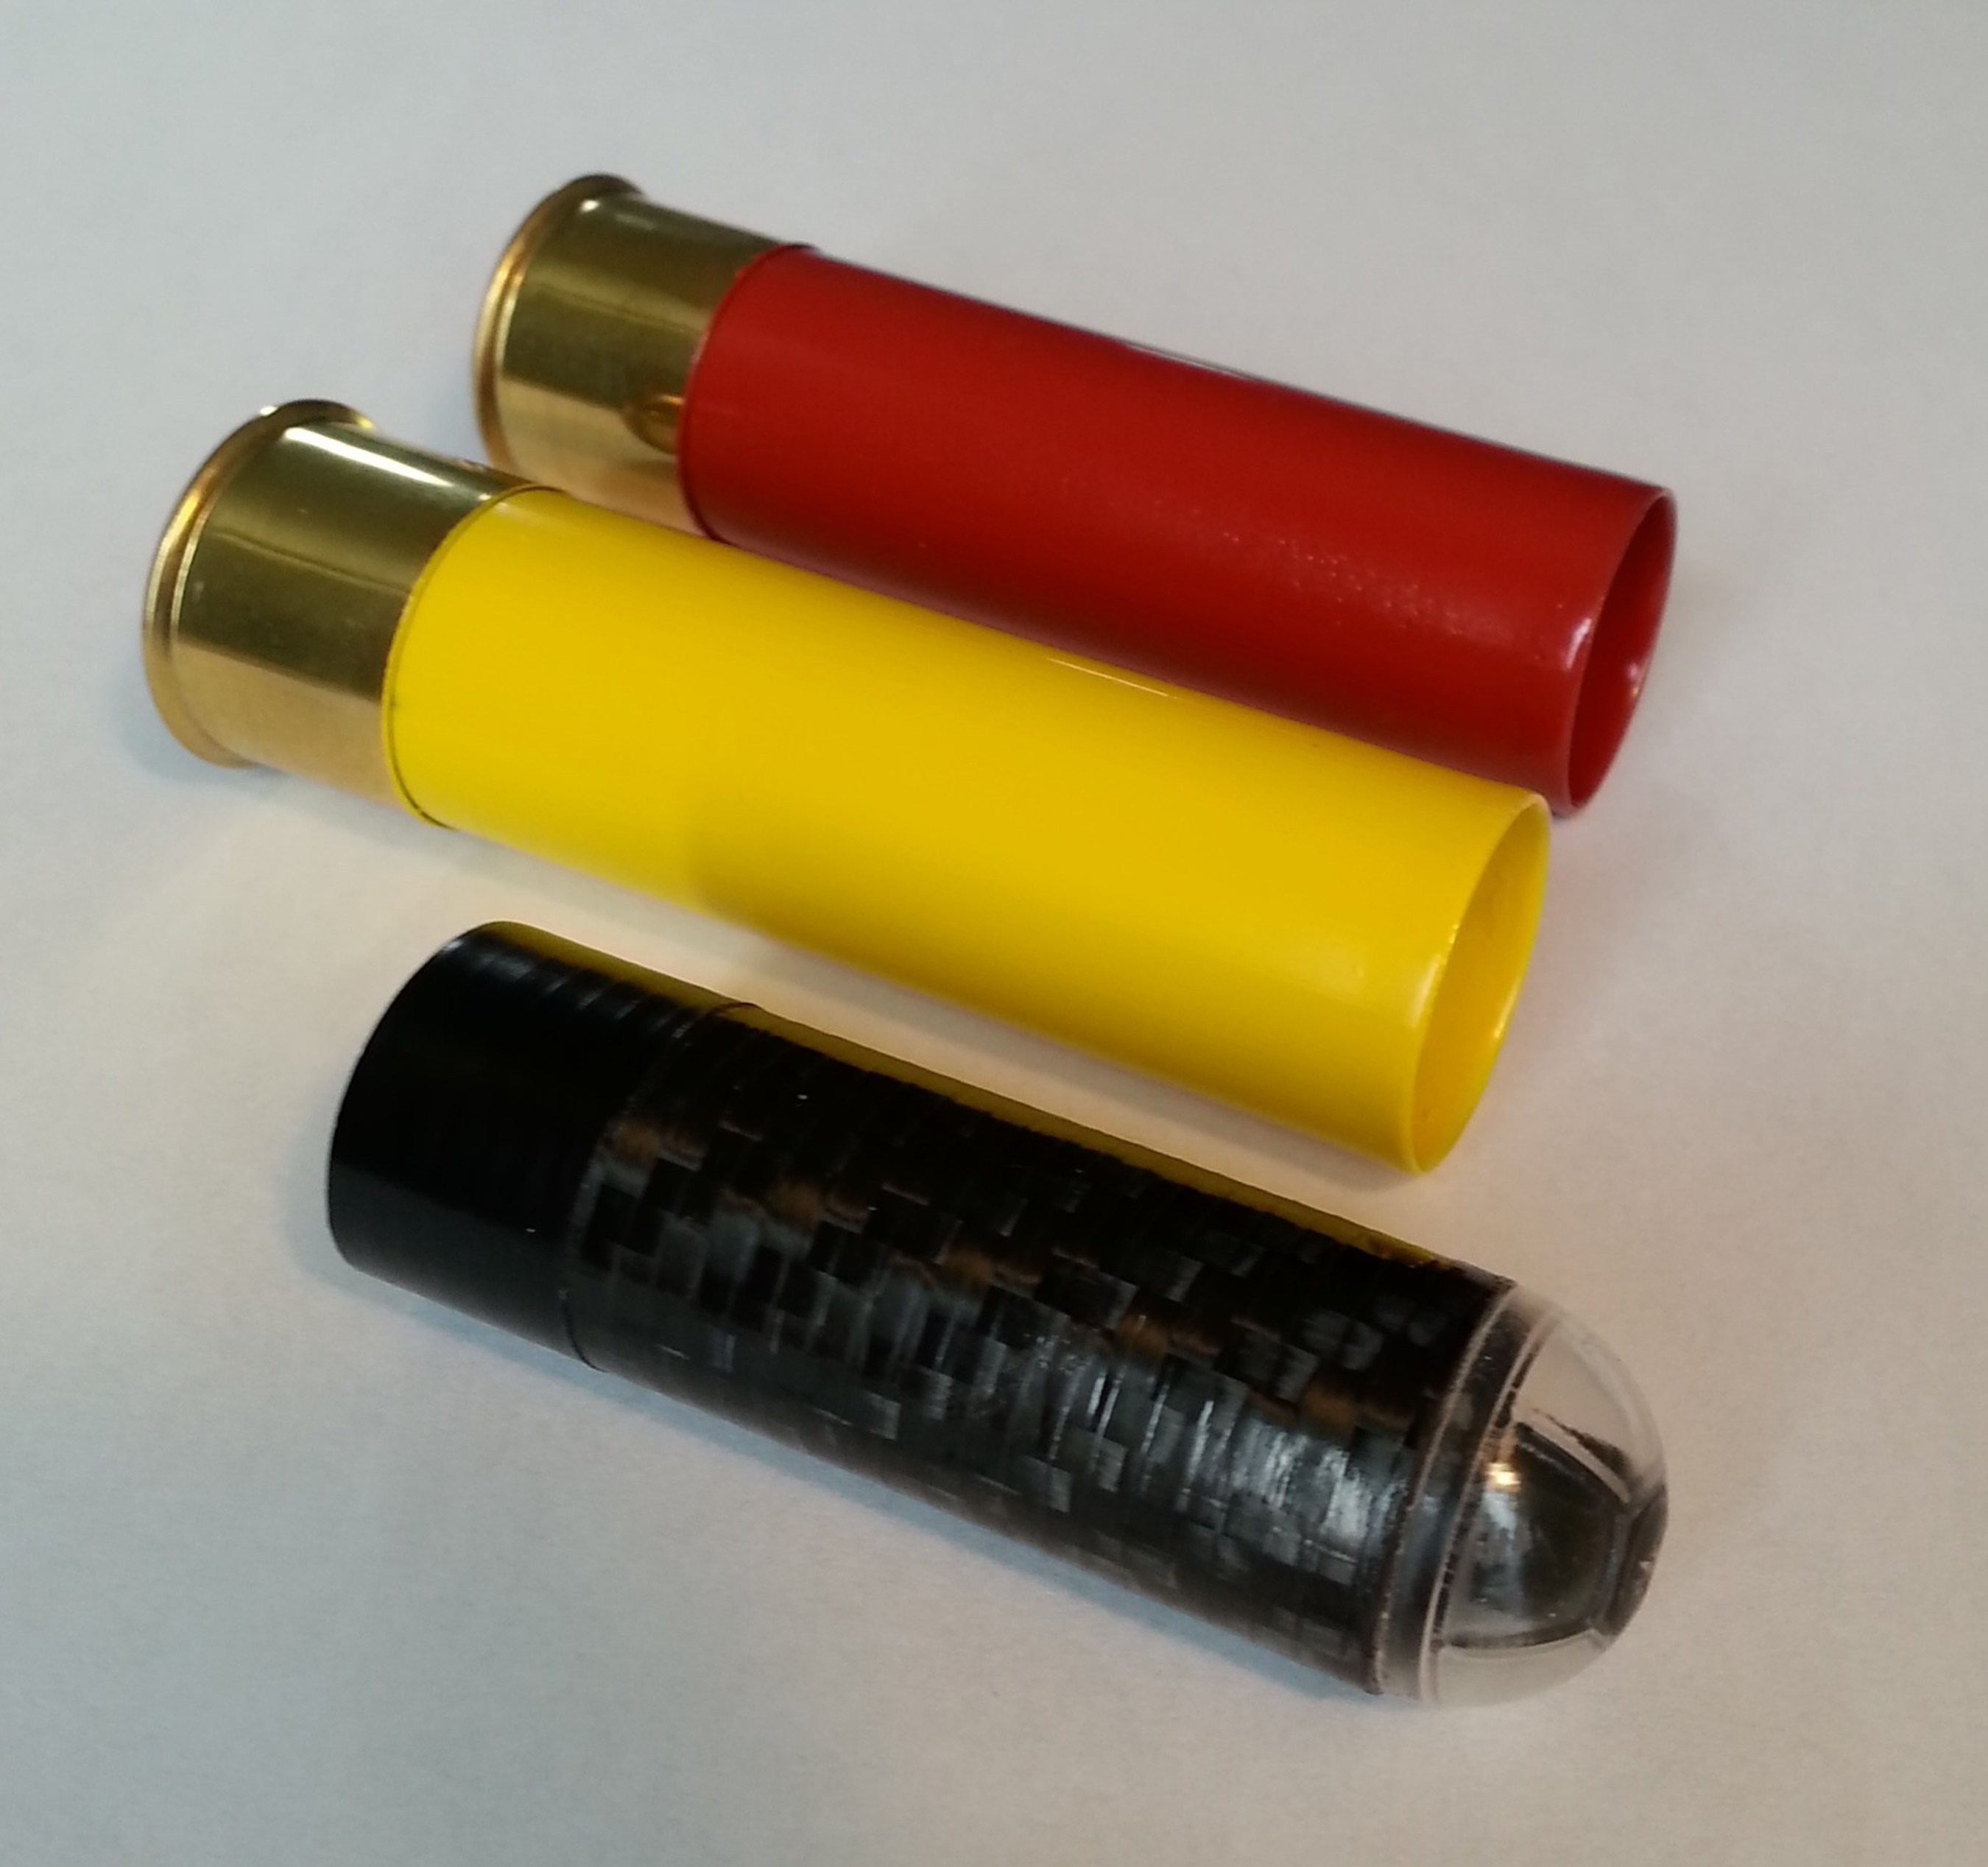 SmartRounds - The World's First Non-Lethal Smart Bullets